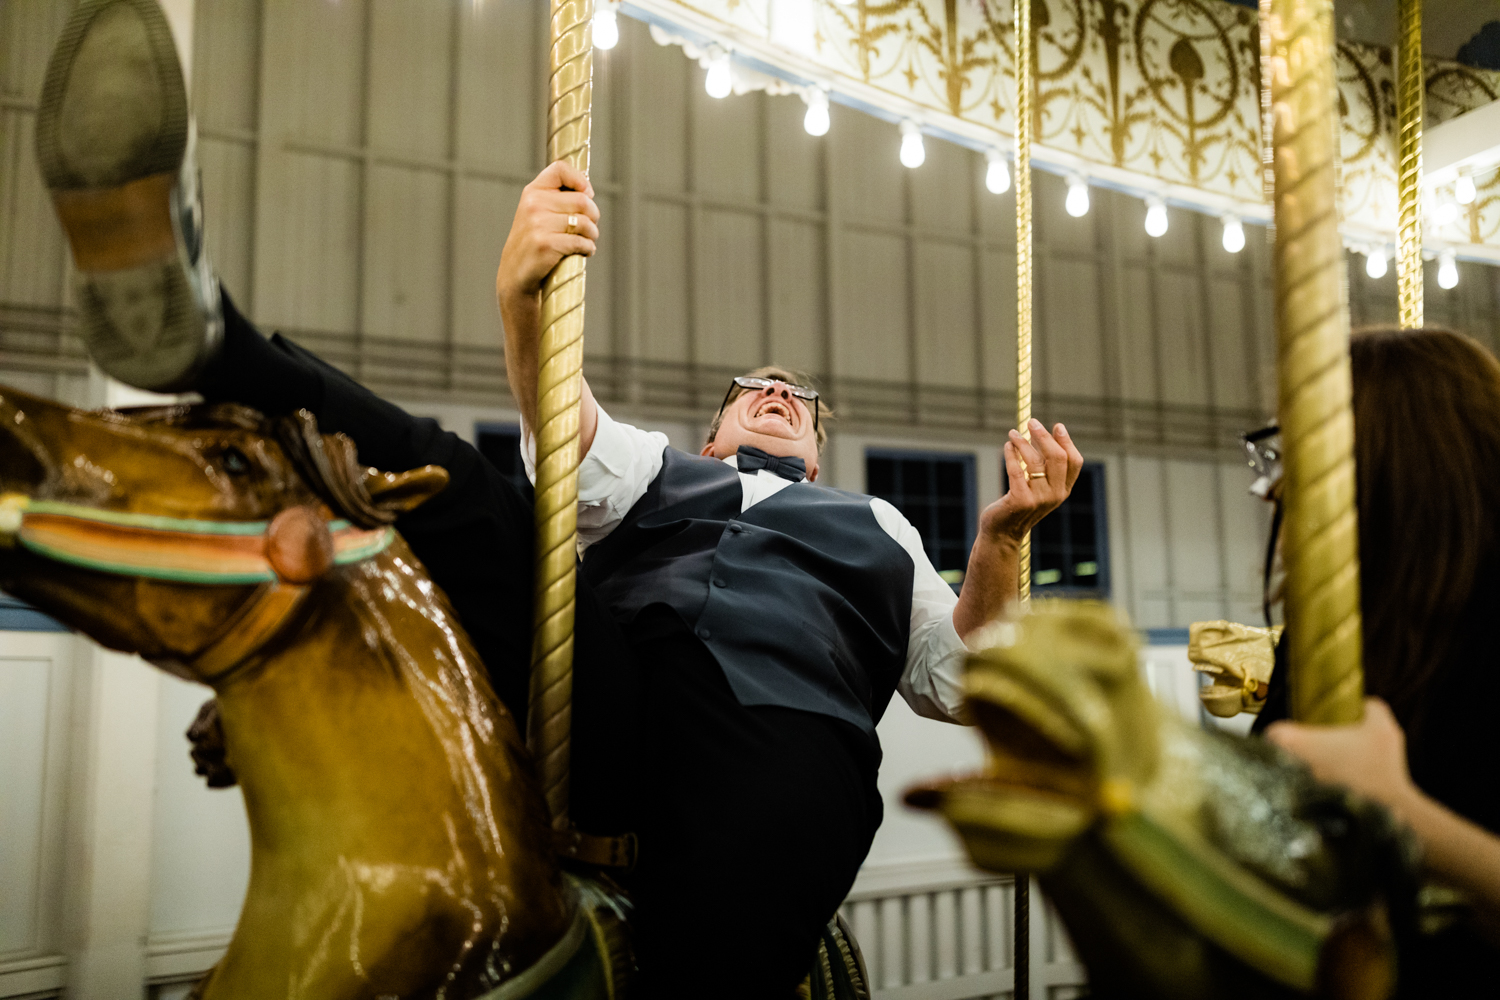 Bride's dad laughing on carousel on wedding day